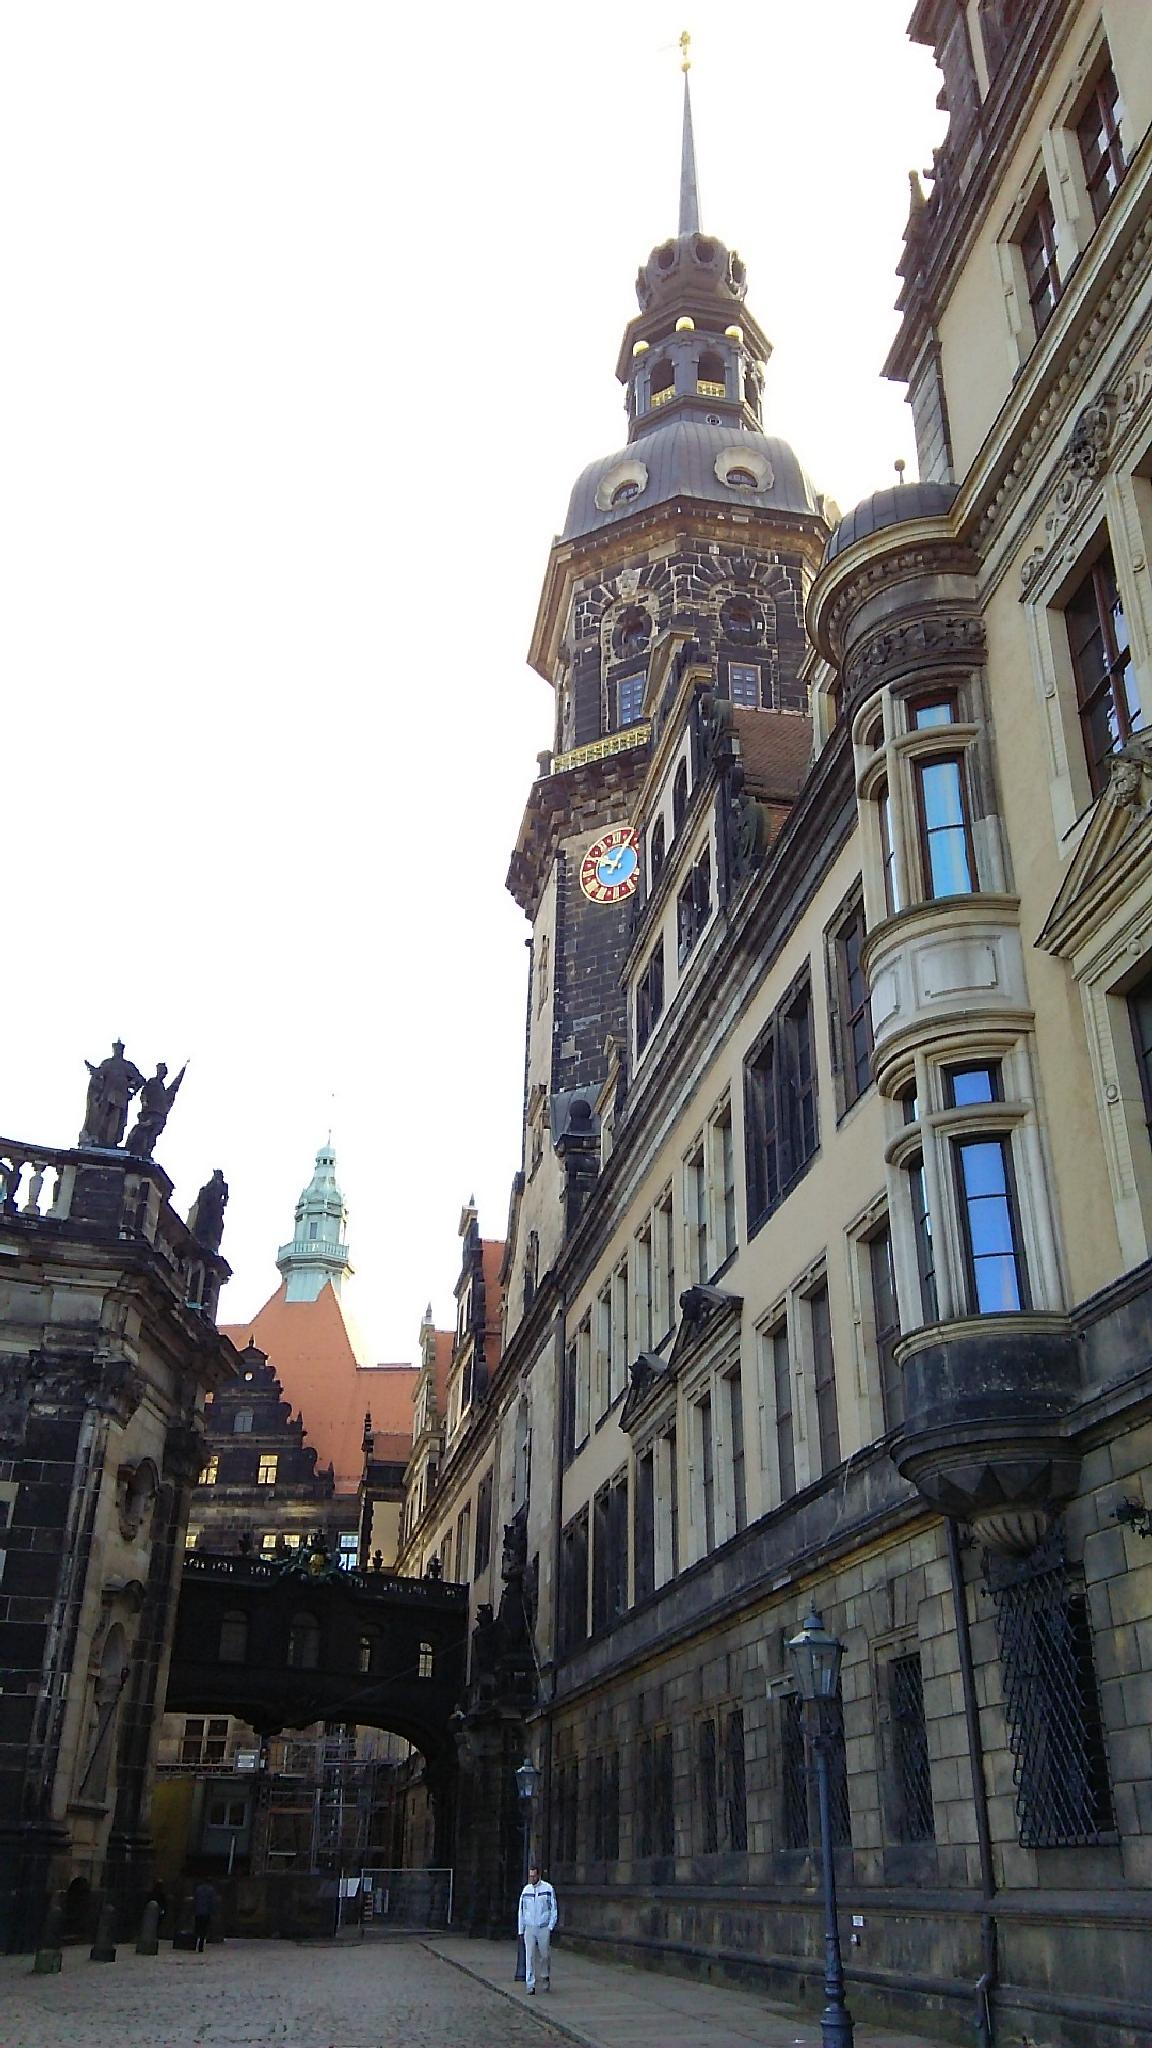 Architecture 15th - 18th  Century Europe by  Biniam